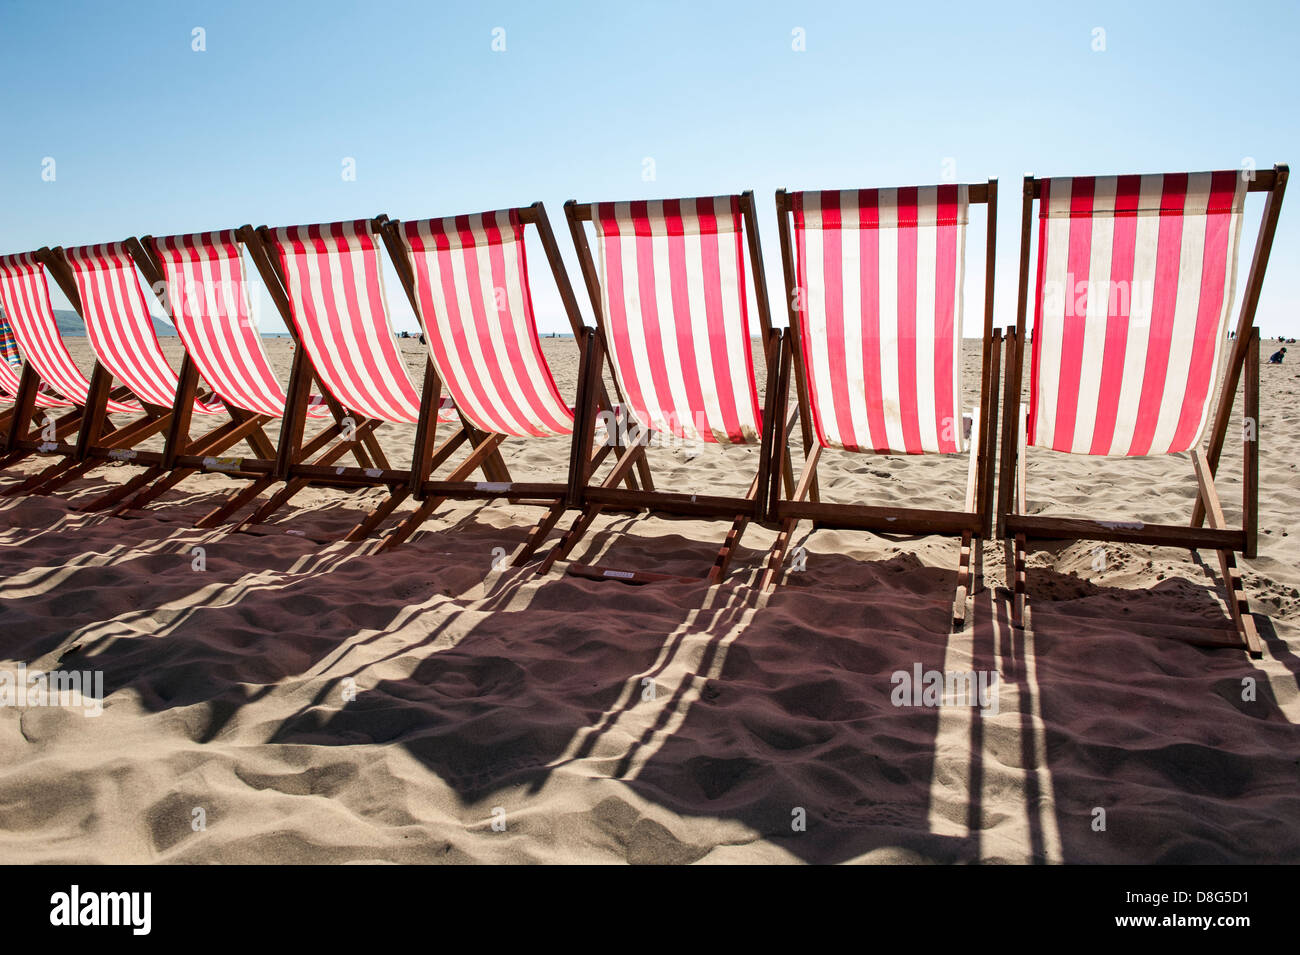 Row Of Red And White Striped Deck Chairs For Hire, Barmouth, North Wales